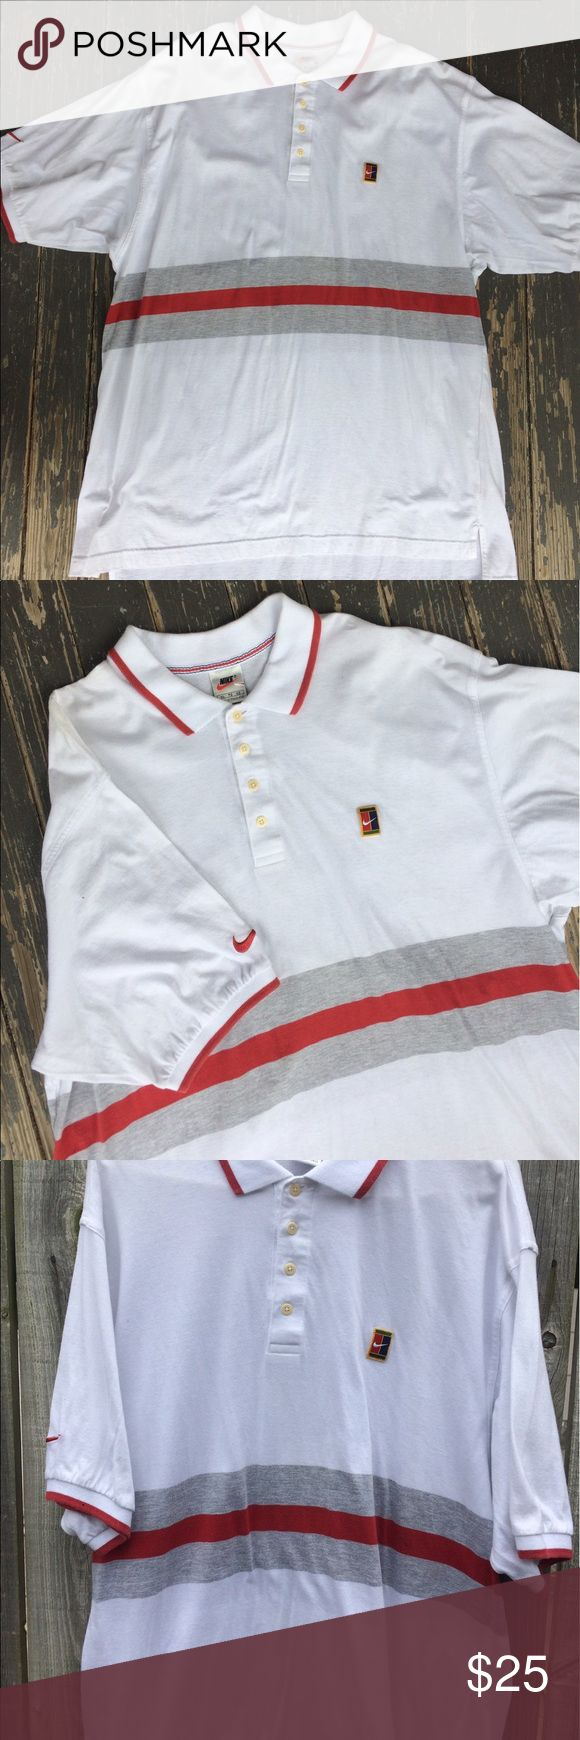 Vintage Nike Andre Agassi Nike polo shirt men's XL Vintage Nike polo Quarter Button shirt. Men's XL true to size. Nike Shirts Polos